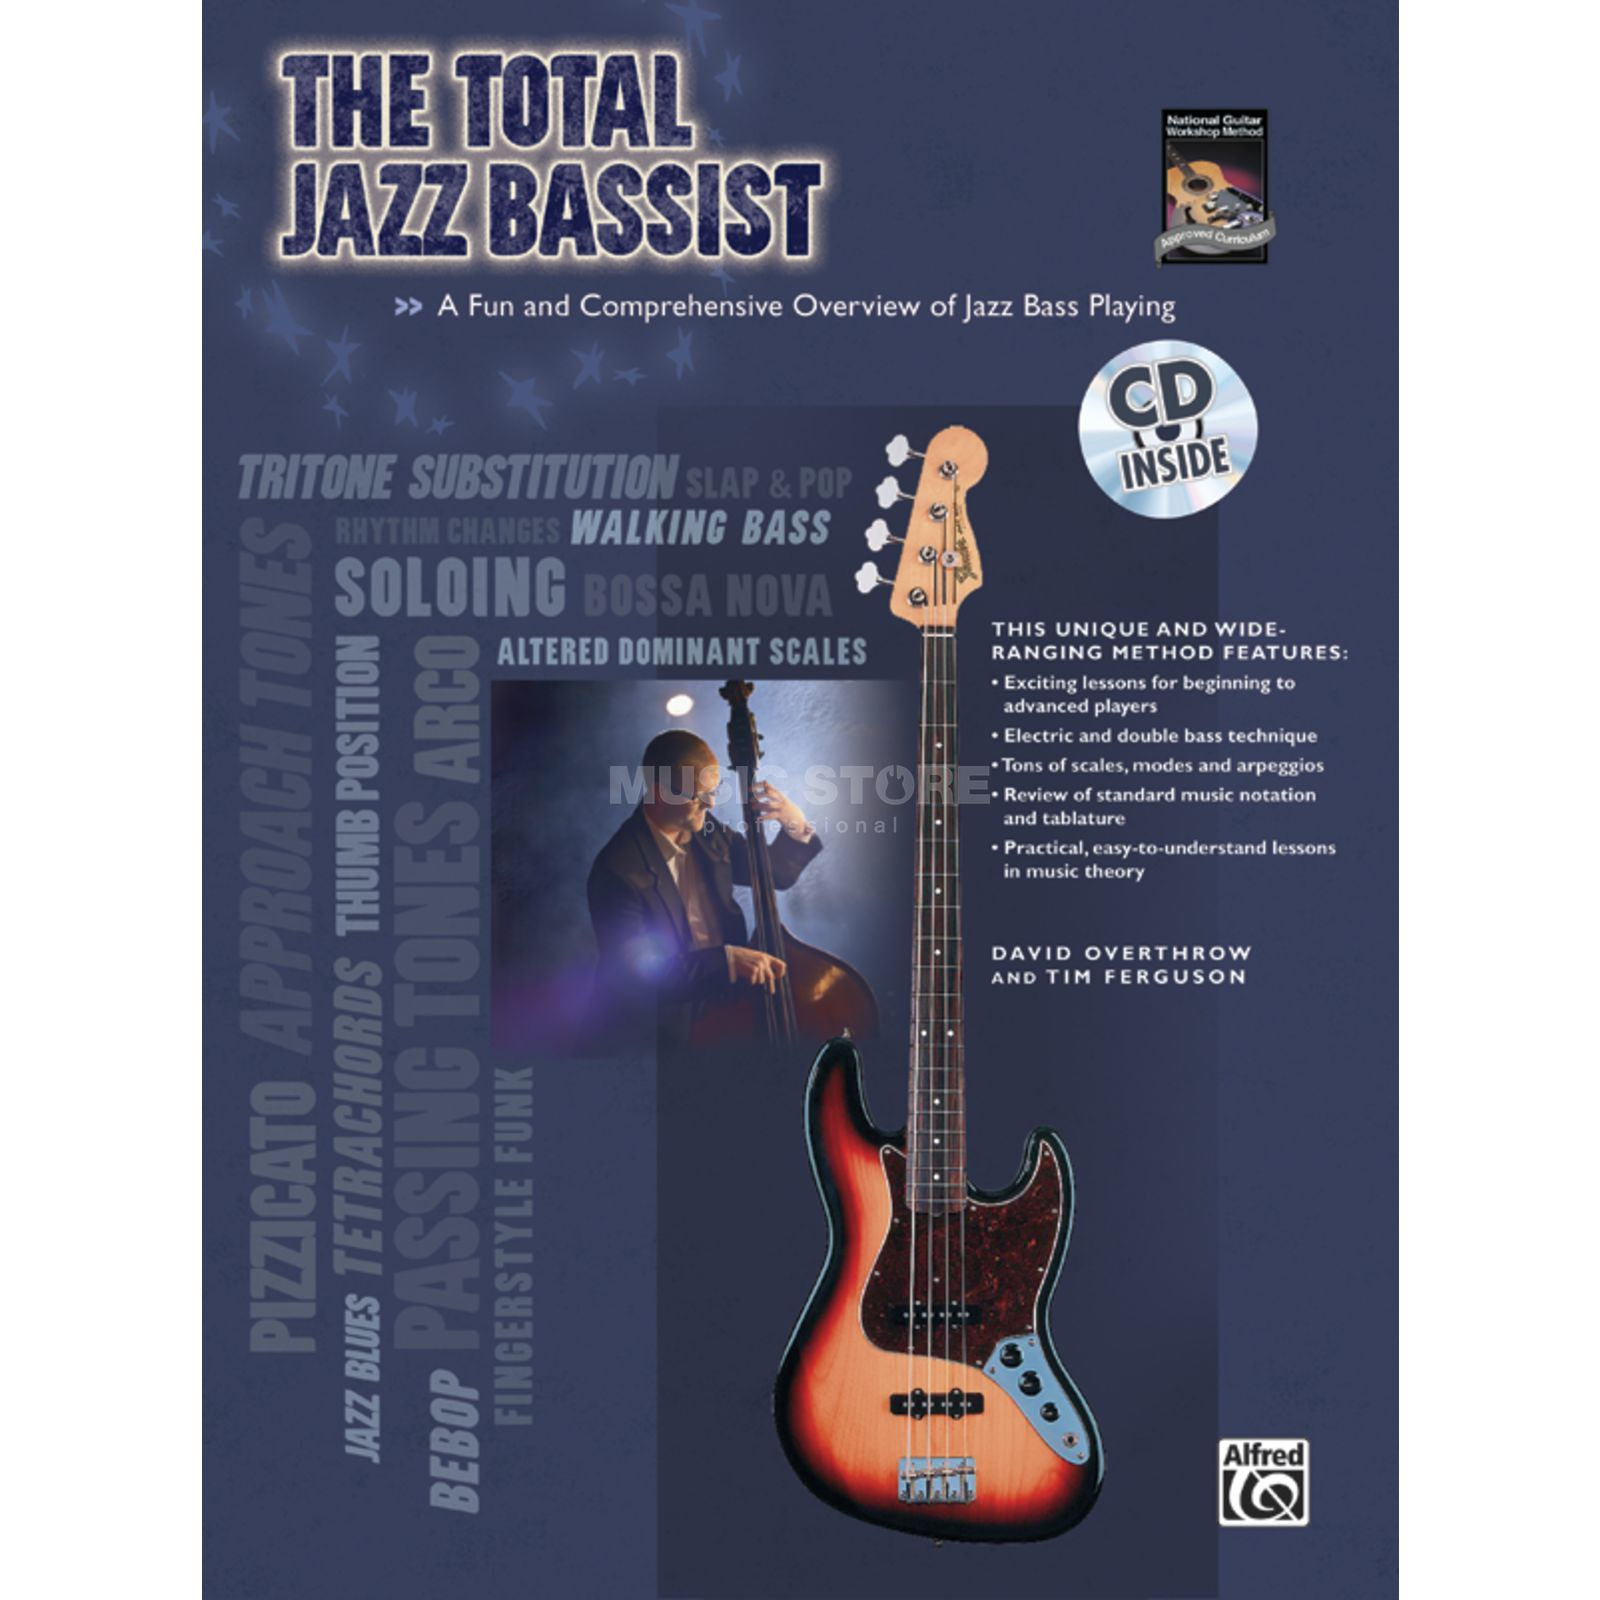 Alfred Music The Total Jazz Bassist David Overthrow, CD Produktbild